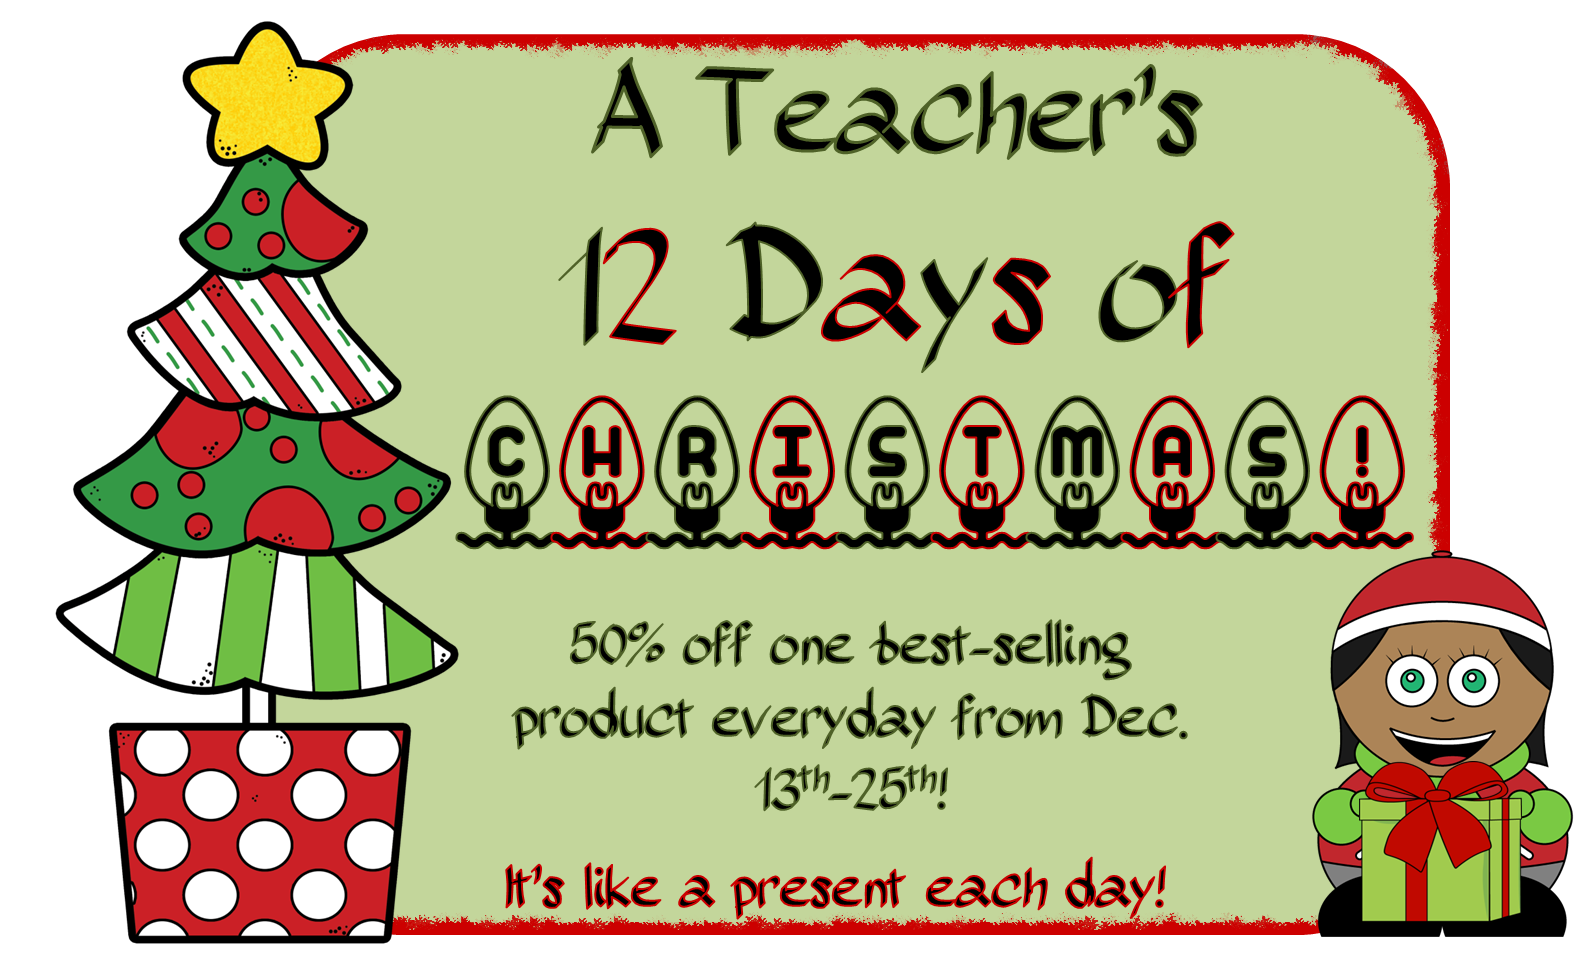 The Teacher's 12 Days of Christmas Deal: Day 11 - Teacher's Toolkit